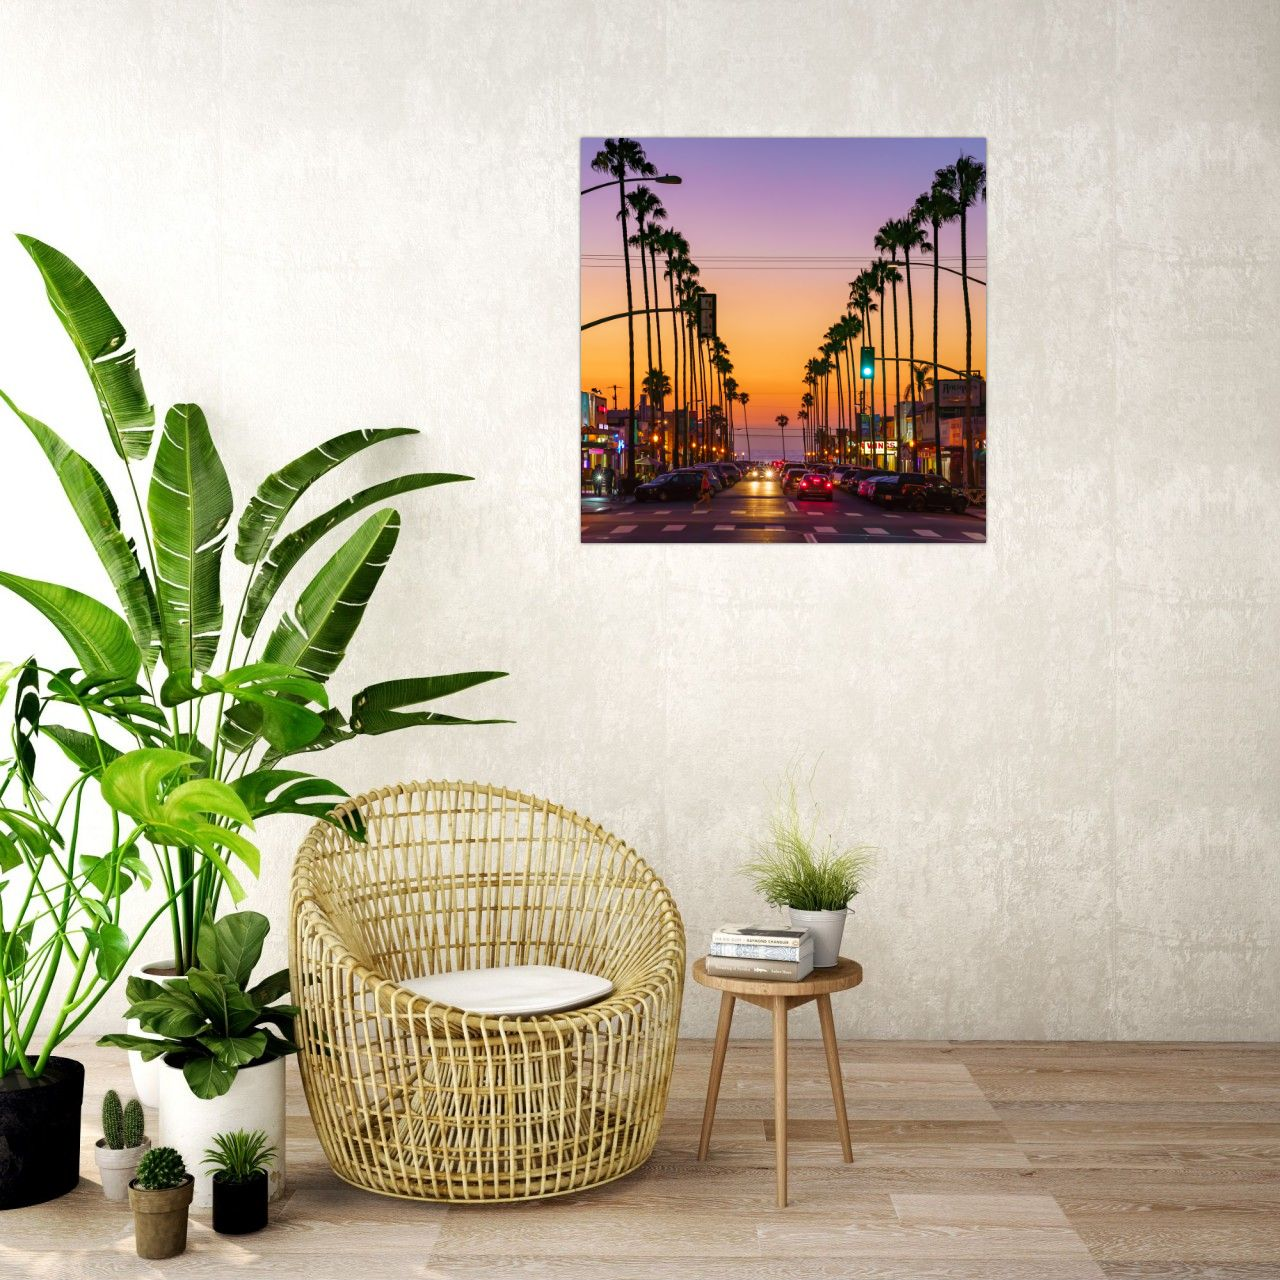 Newport Avenue - Ocean Beach, San Diego Modern Metal Wall Art Print by McClean Photography